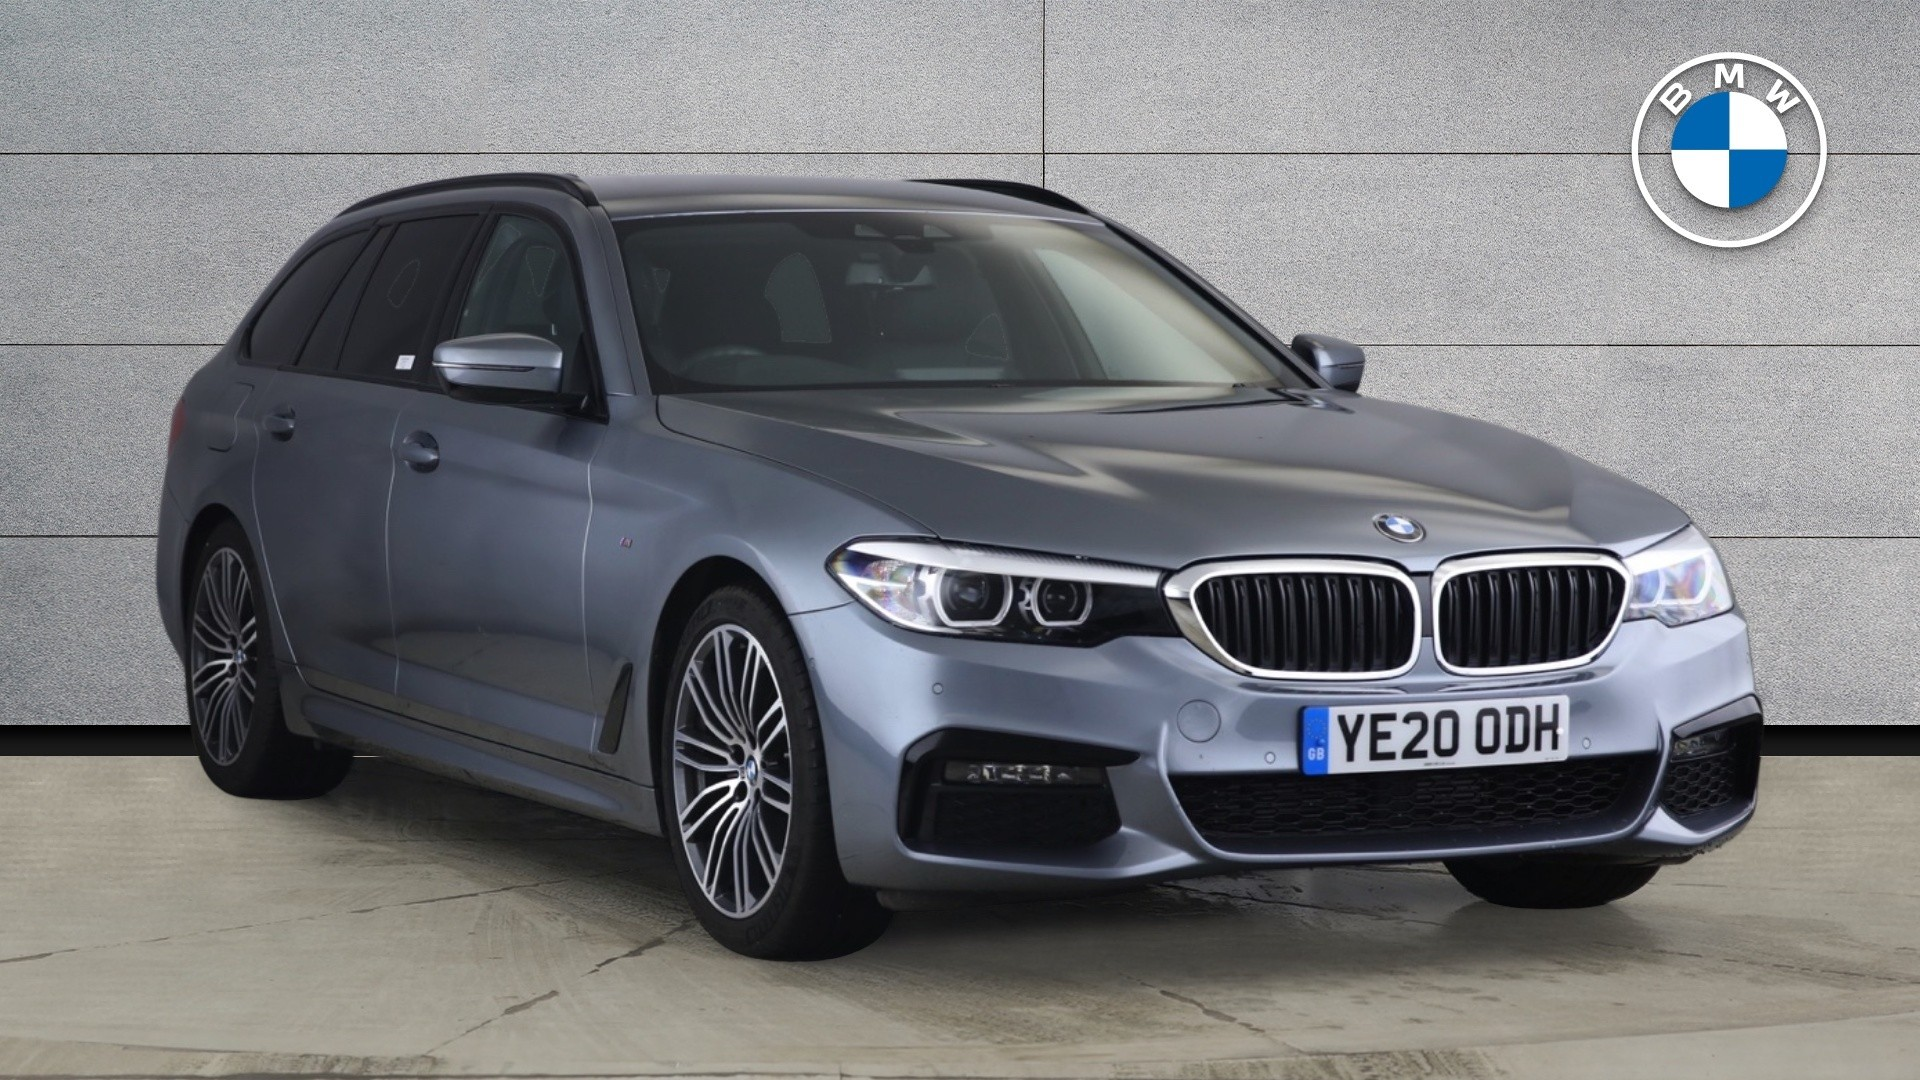 Used BMW 520d M Sport Touring (YE20ODH)